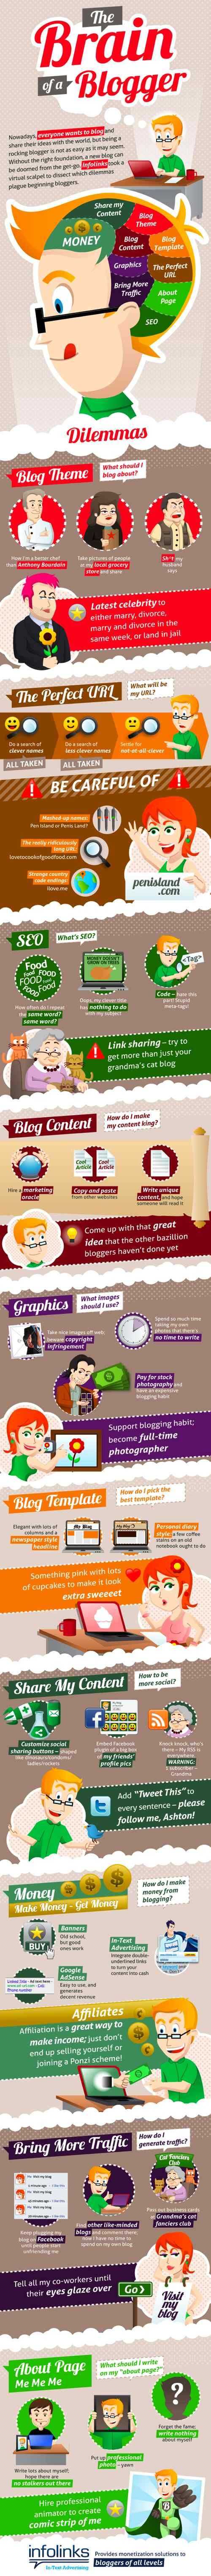 The Brain of a Blogger: Bloggers Brain, Blog Infographic, Internet Marketing, Social Media, The Brain, Bloggers Infographic, Socialmedia, Brain